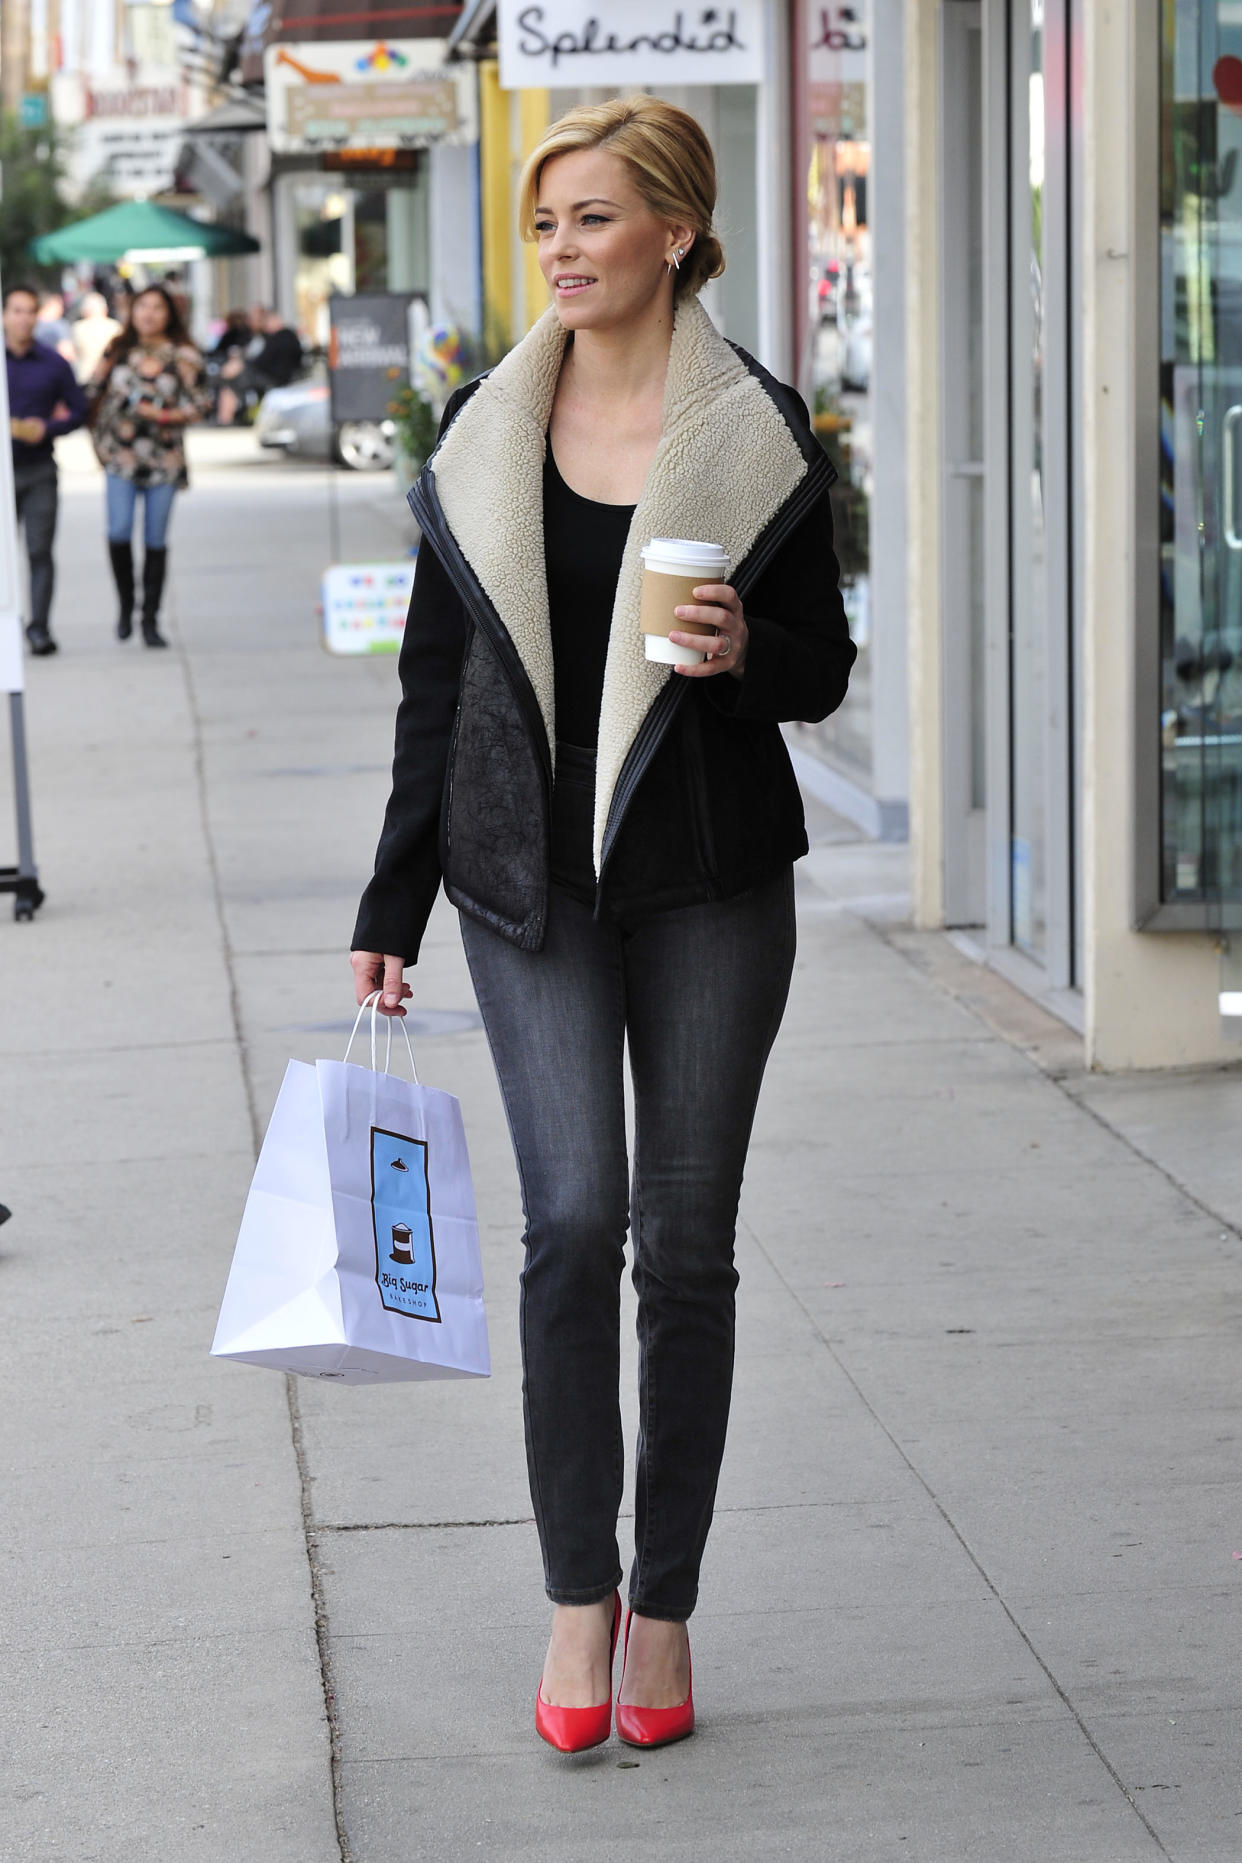 - Los Angeles, CA - 11/14/2014 - Elizabeth Banks out in L.A. running errands. Jacket and denim by NYDJ. -PICTURED: Elizabeth Banks -PHOTO by: Michael Simon/startraksphoto.com -MS_238999 Editorial - Rights Managed Image - Please contact www.startraksphoto.com for licensing fee Startraks Photo Startraks Photo New York, NY  For licensing please call 212-414-9464 or email sales@startraksphoto.com